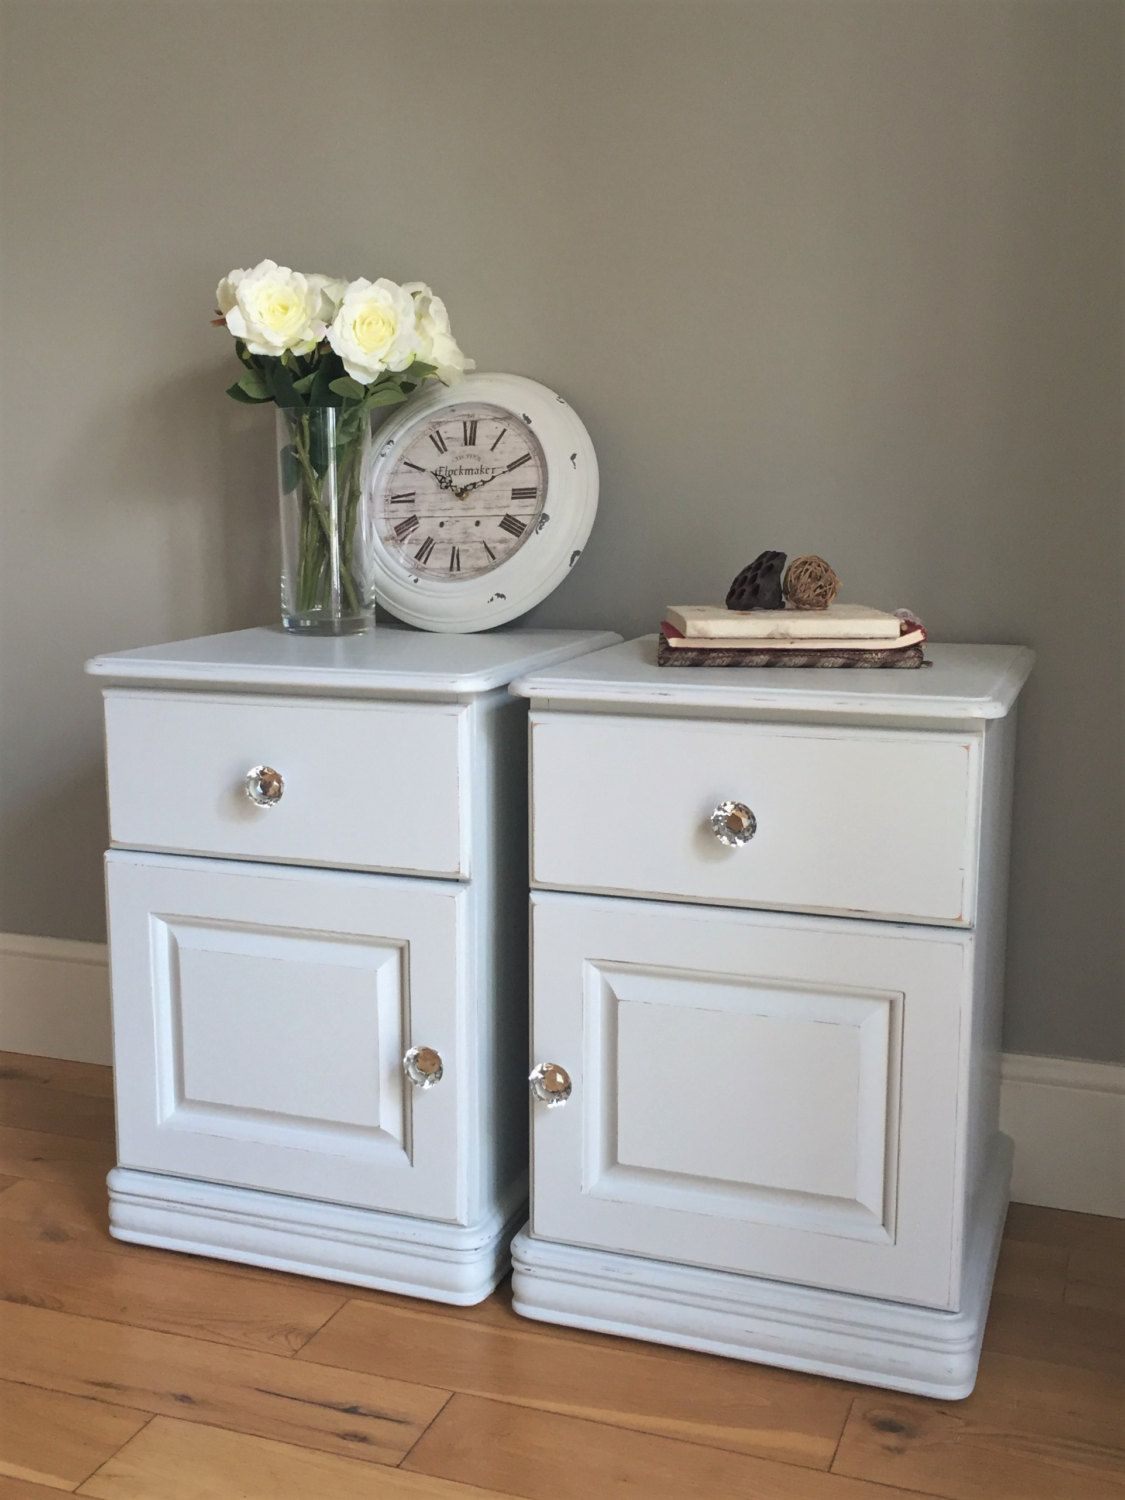 Light Grey Bedside Table: Pair Of Pine Painted Bedside Tables